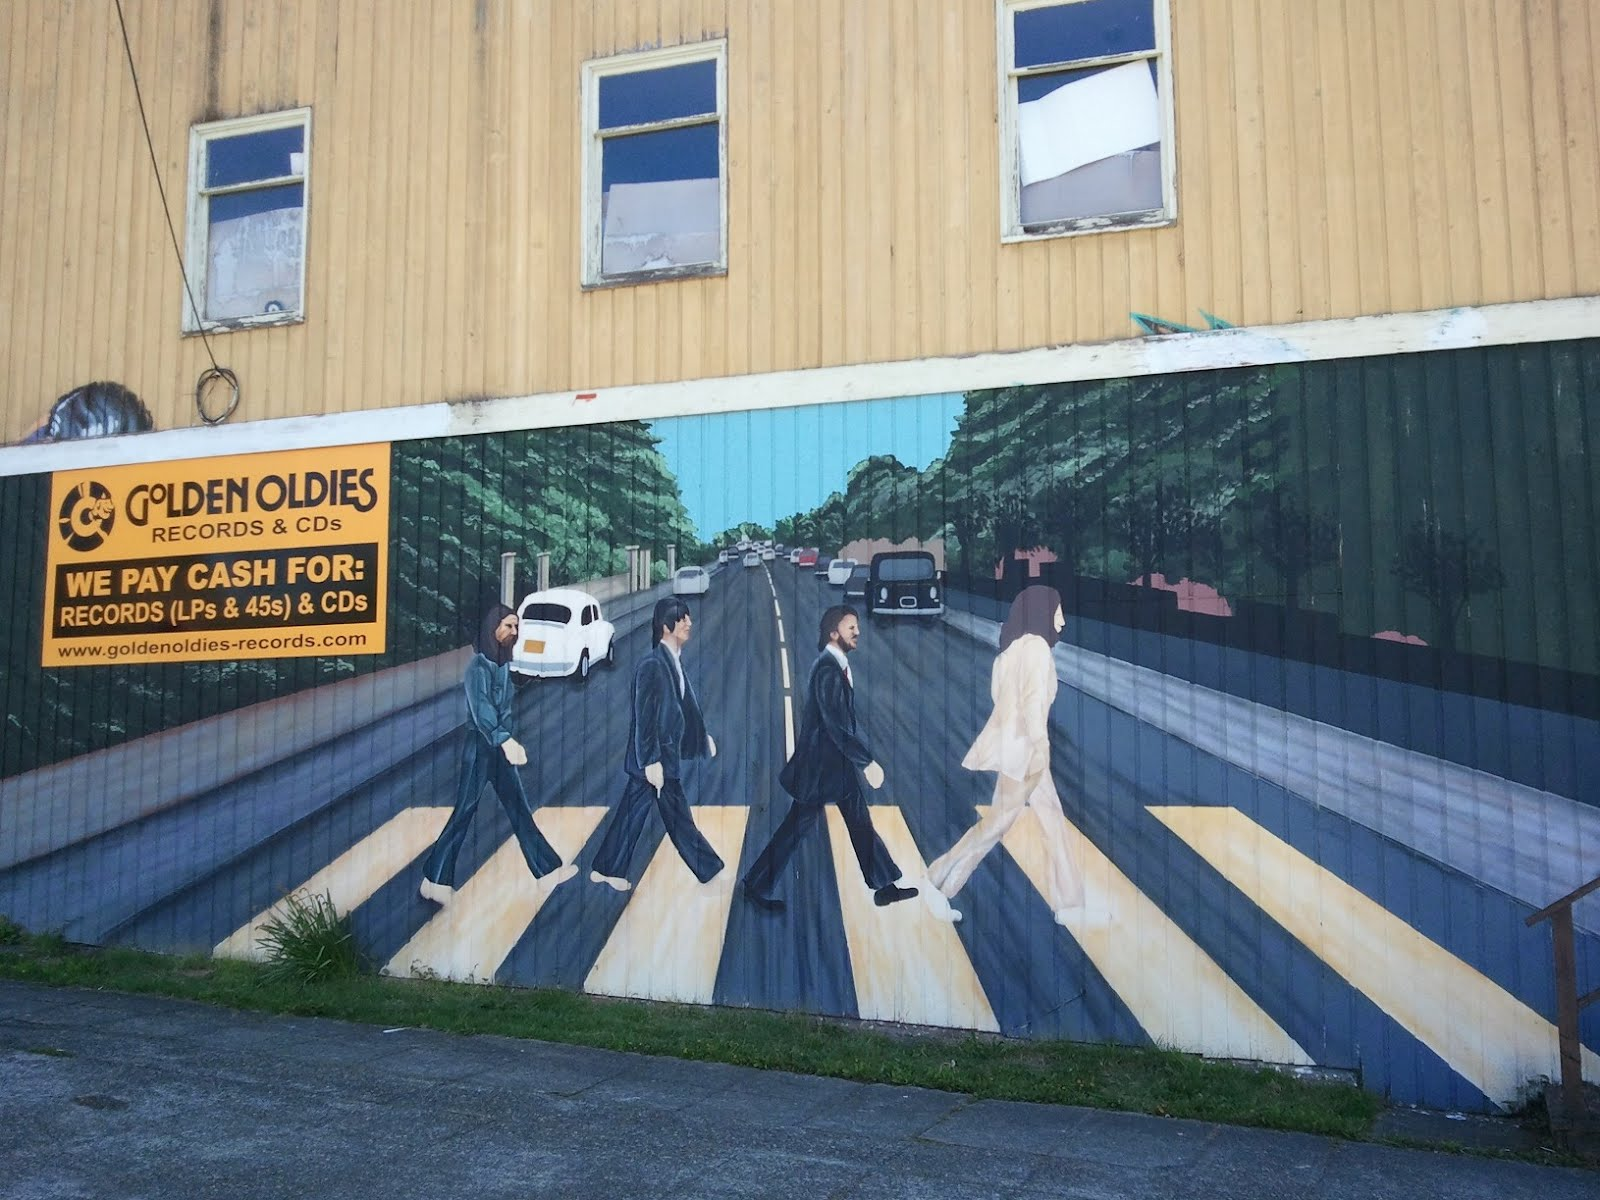 travelmarx abbey road mural golden oldies records